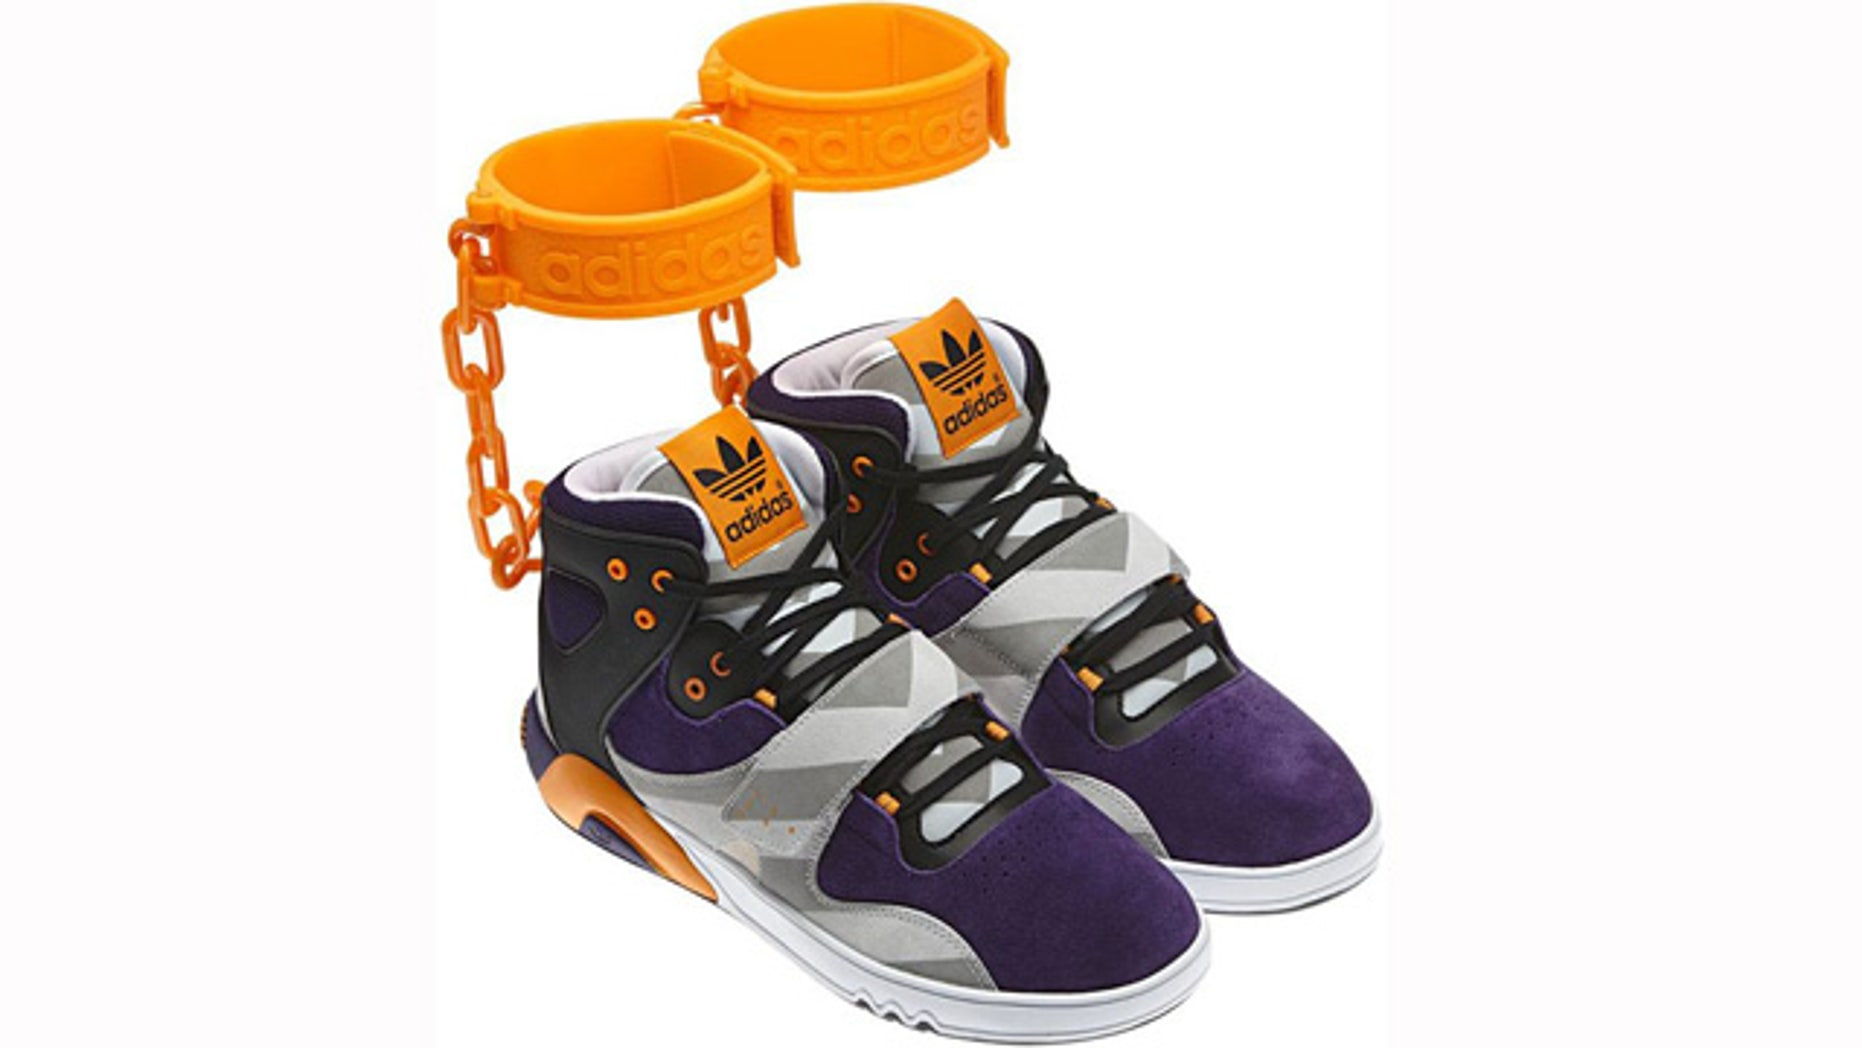 an image of the JS Roundhouse Mids was posted on Adidas' Facebook page. The sneakers are to be released this August.